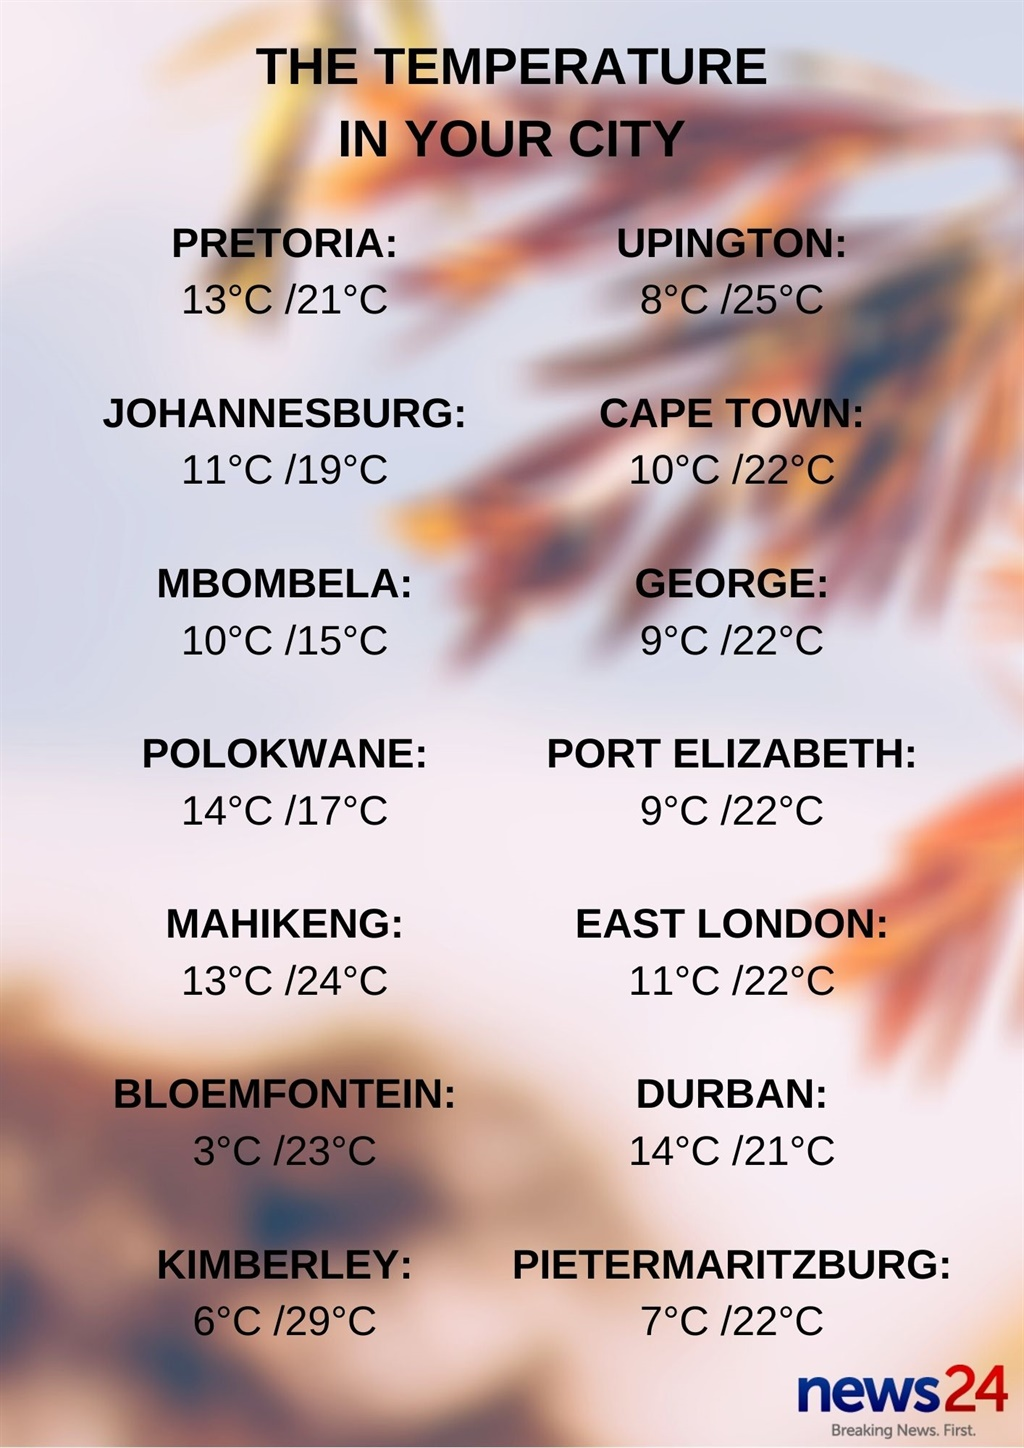 The temperature in your city.